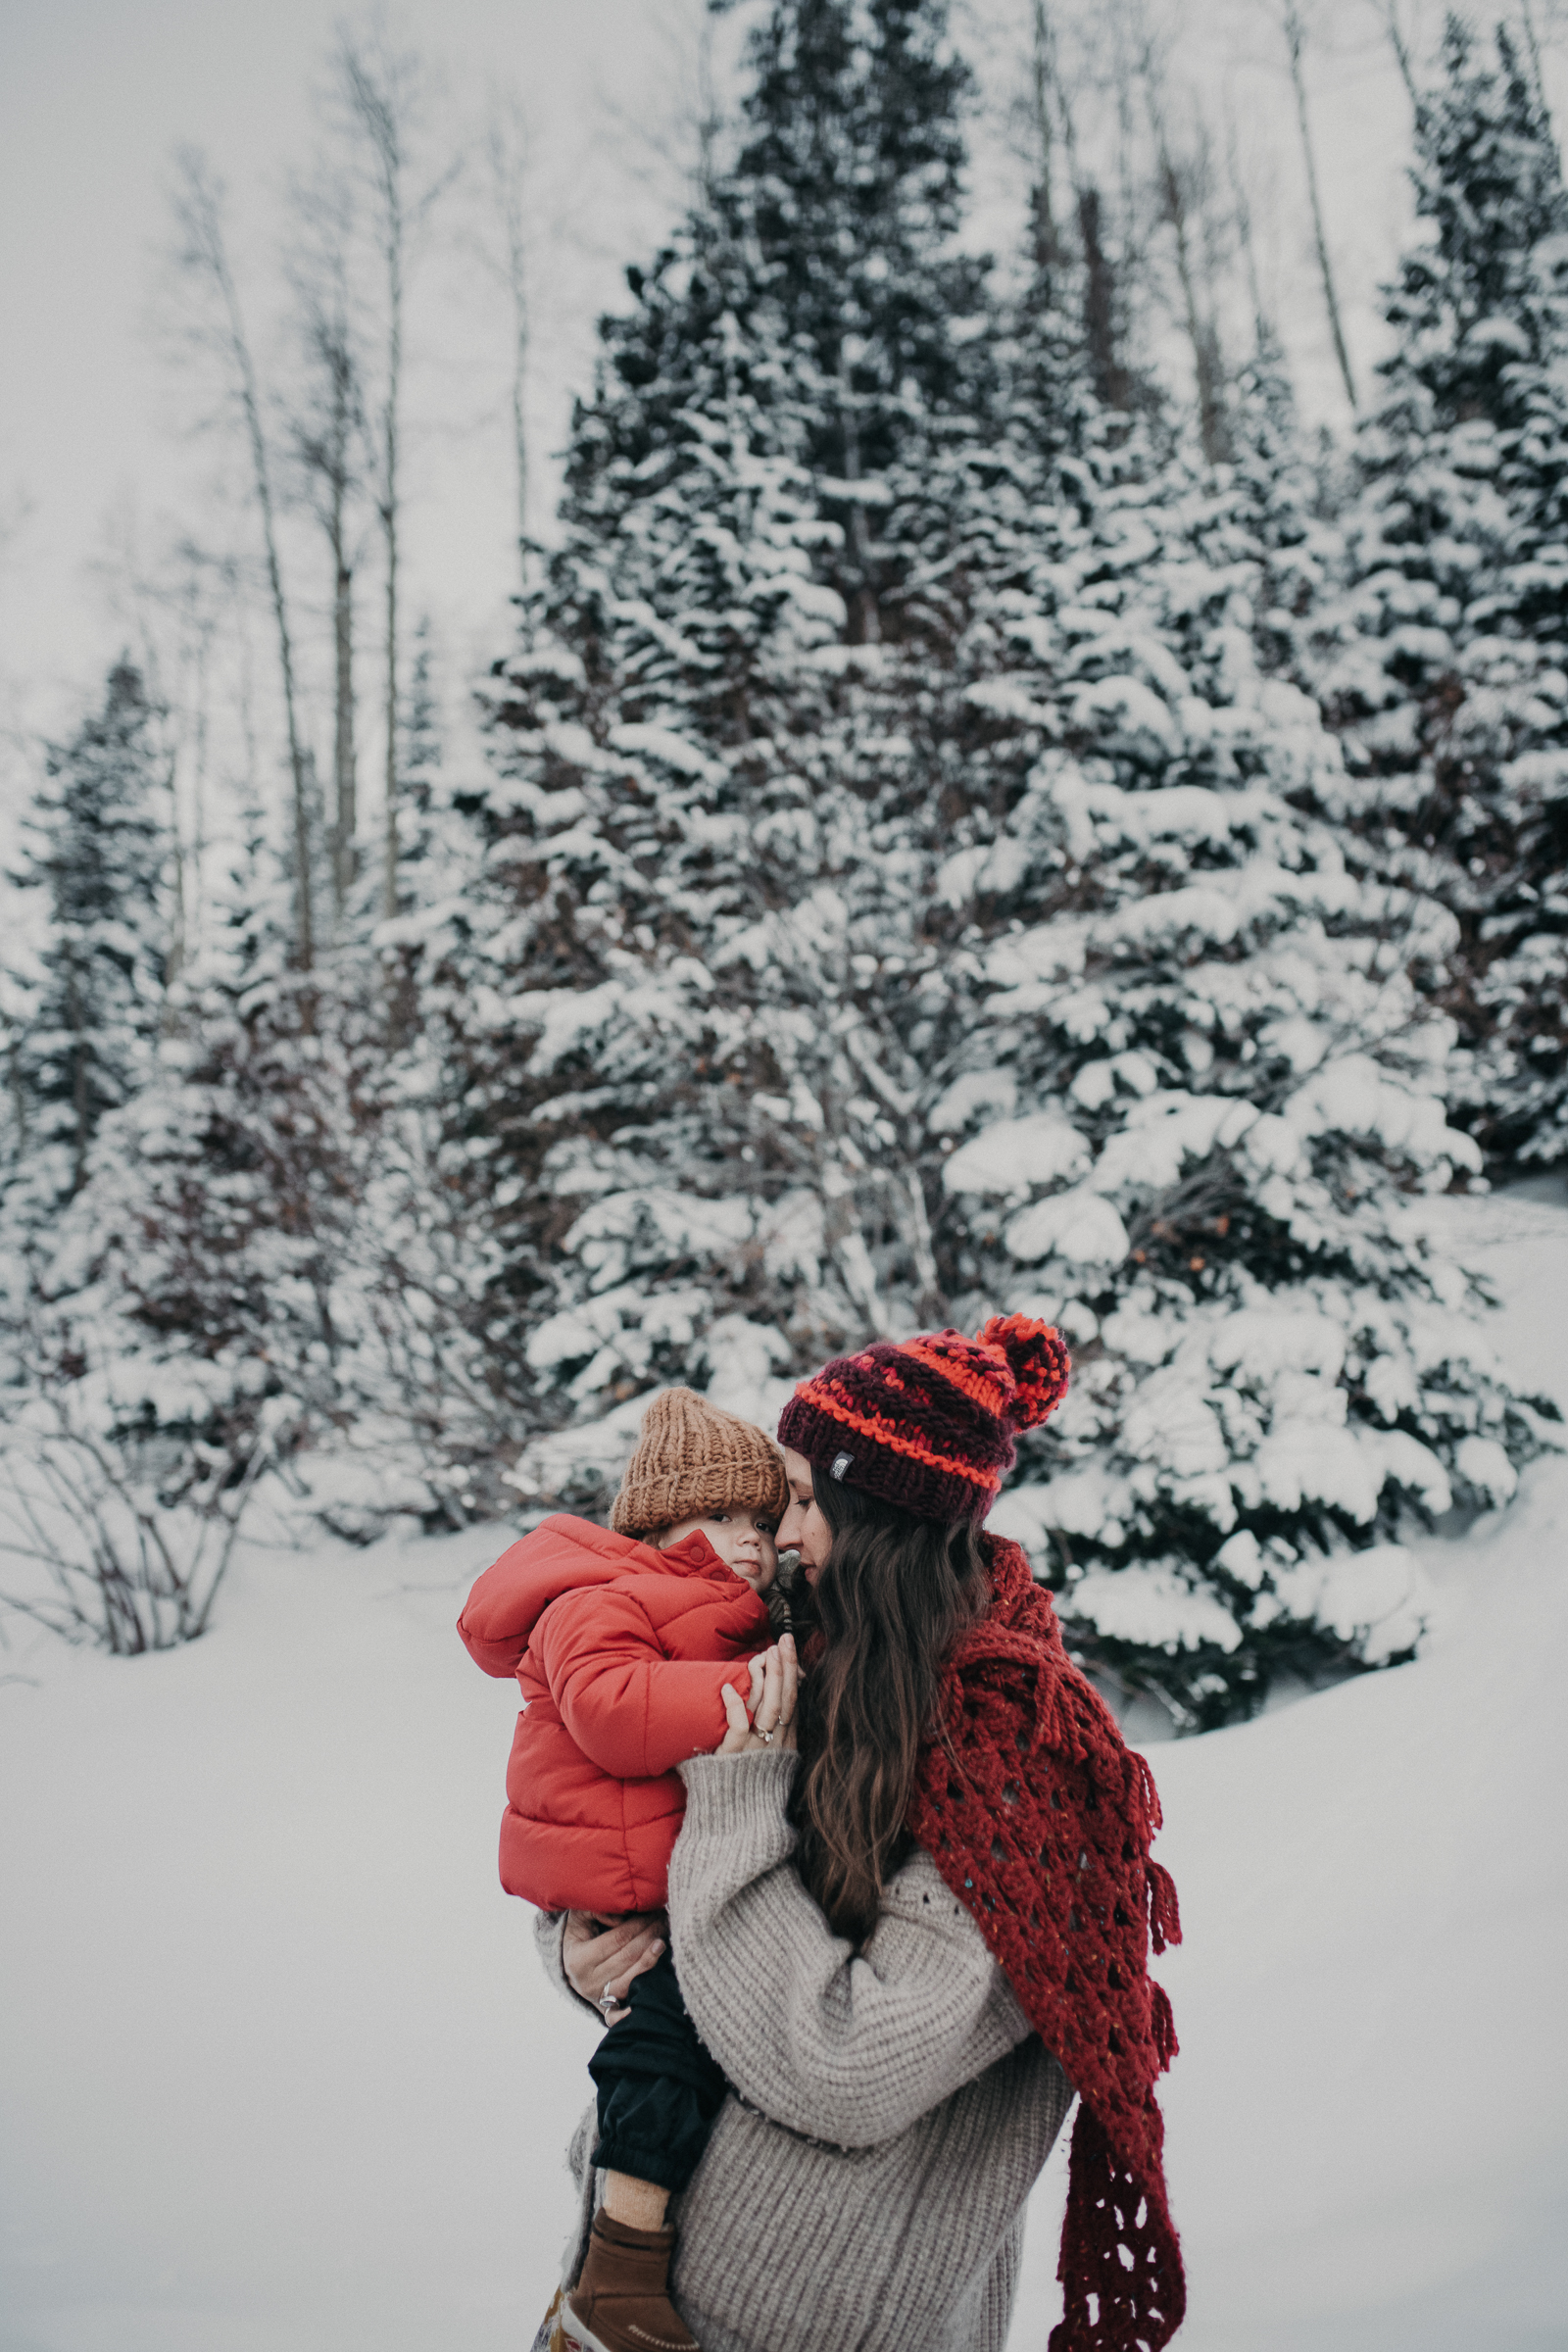 Mom and son in snowy mountains